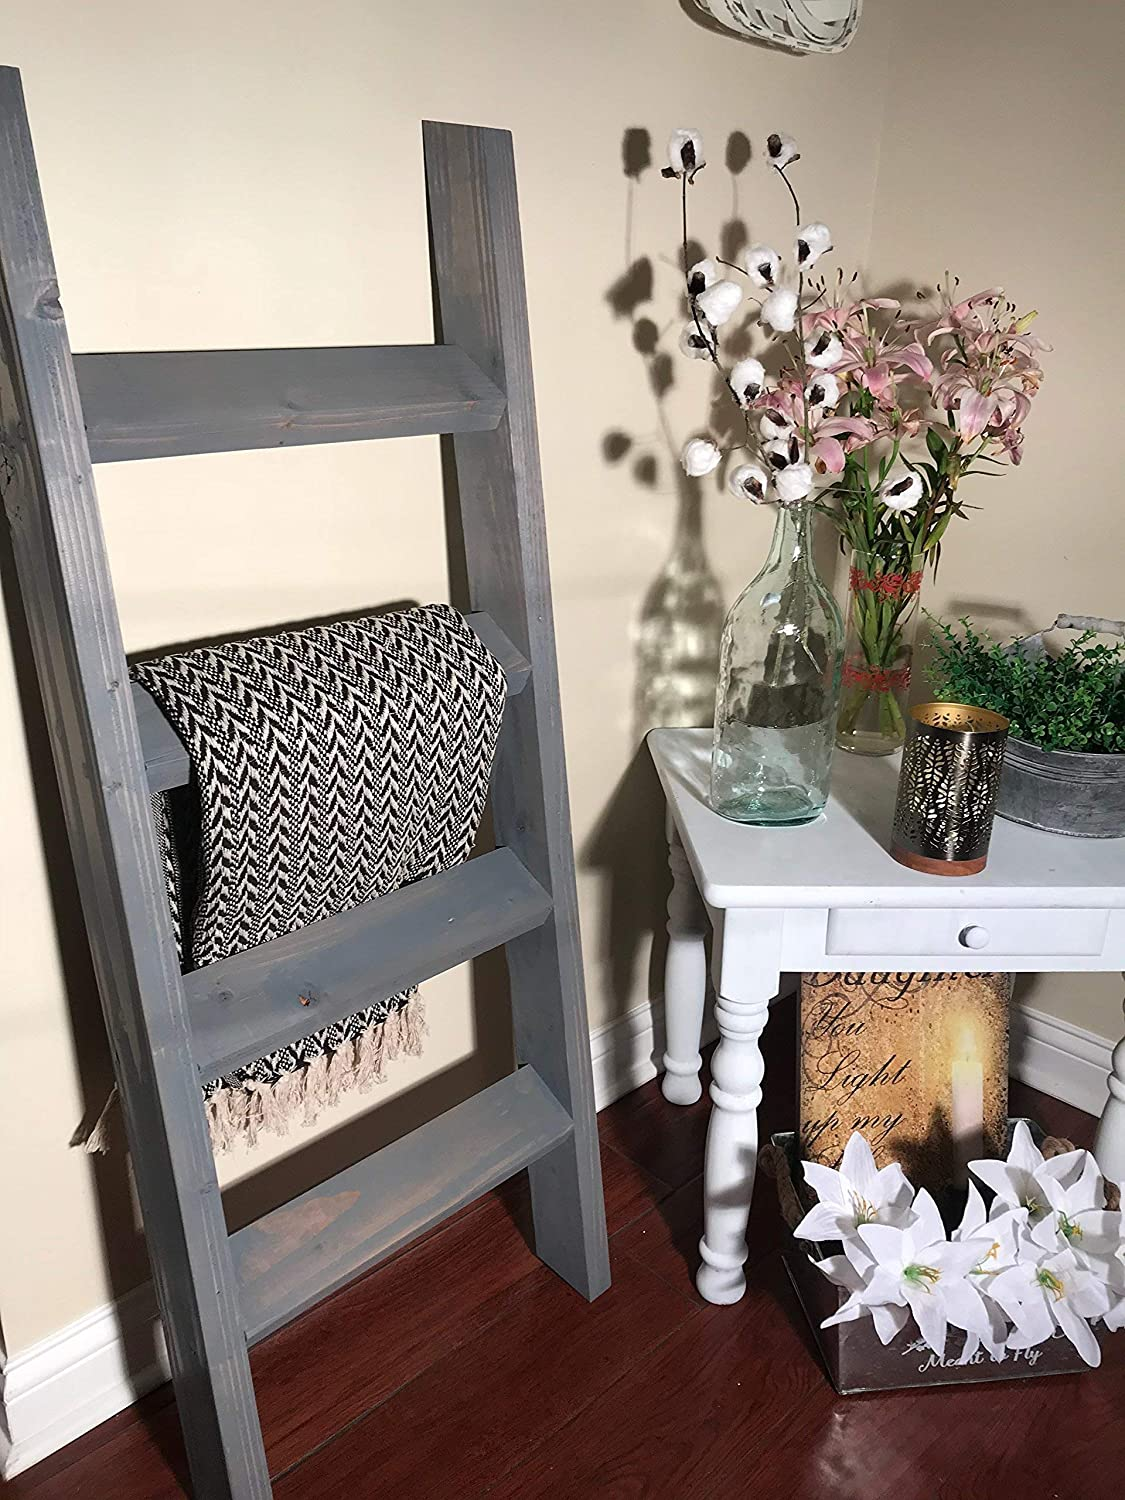 3, 4 or 5 ft Vintage Gray Blanket Ladder, Quilt Ladder, Wood Ladder, Towel Ladder, Farmhouse Ladder